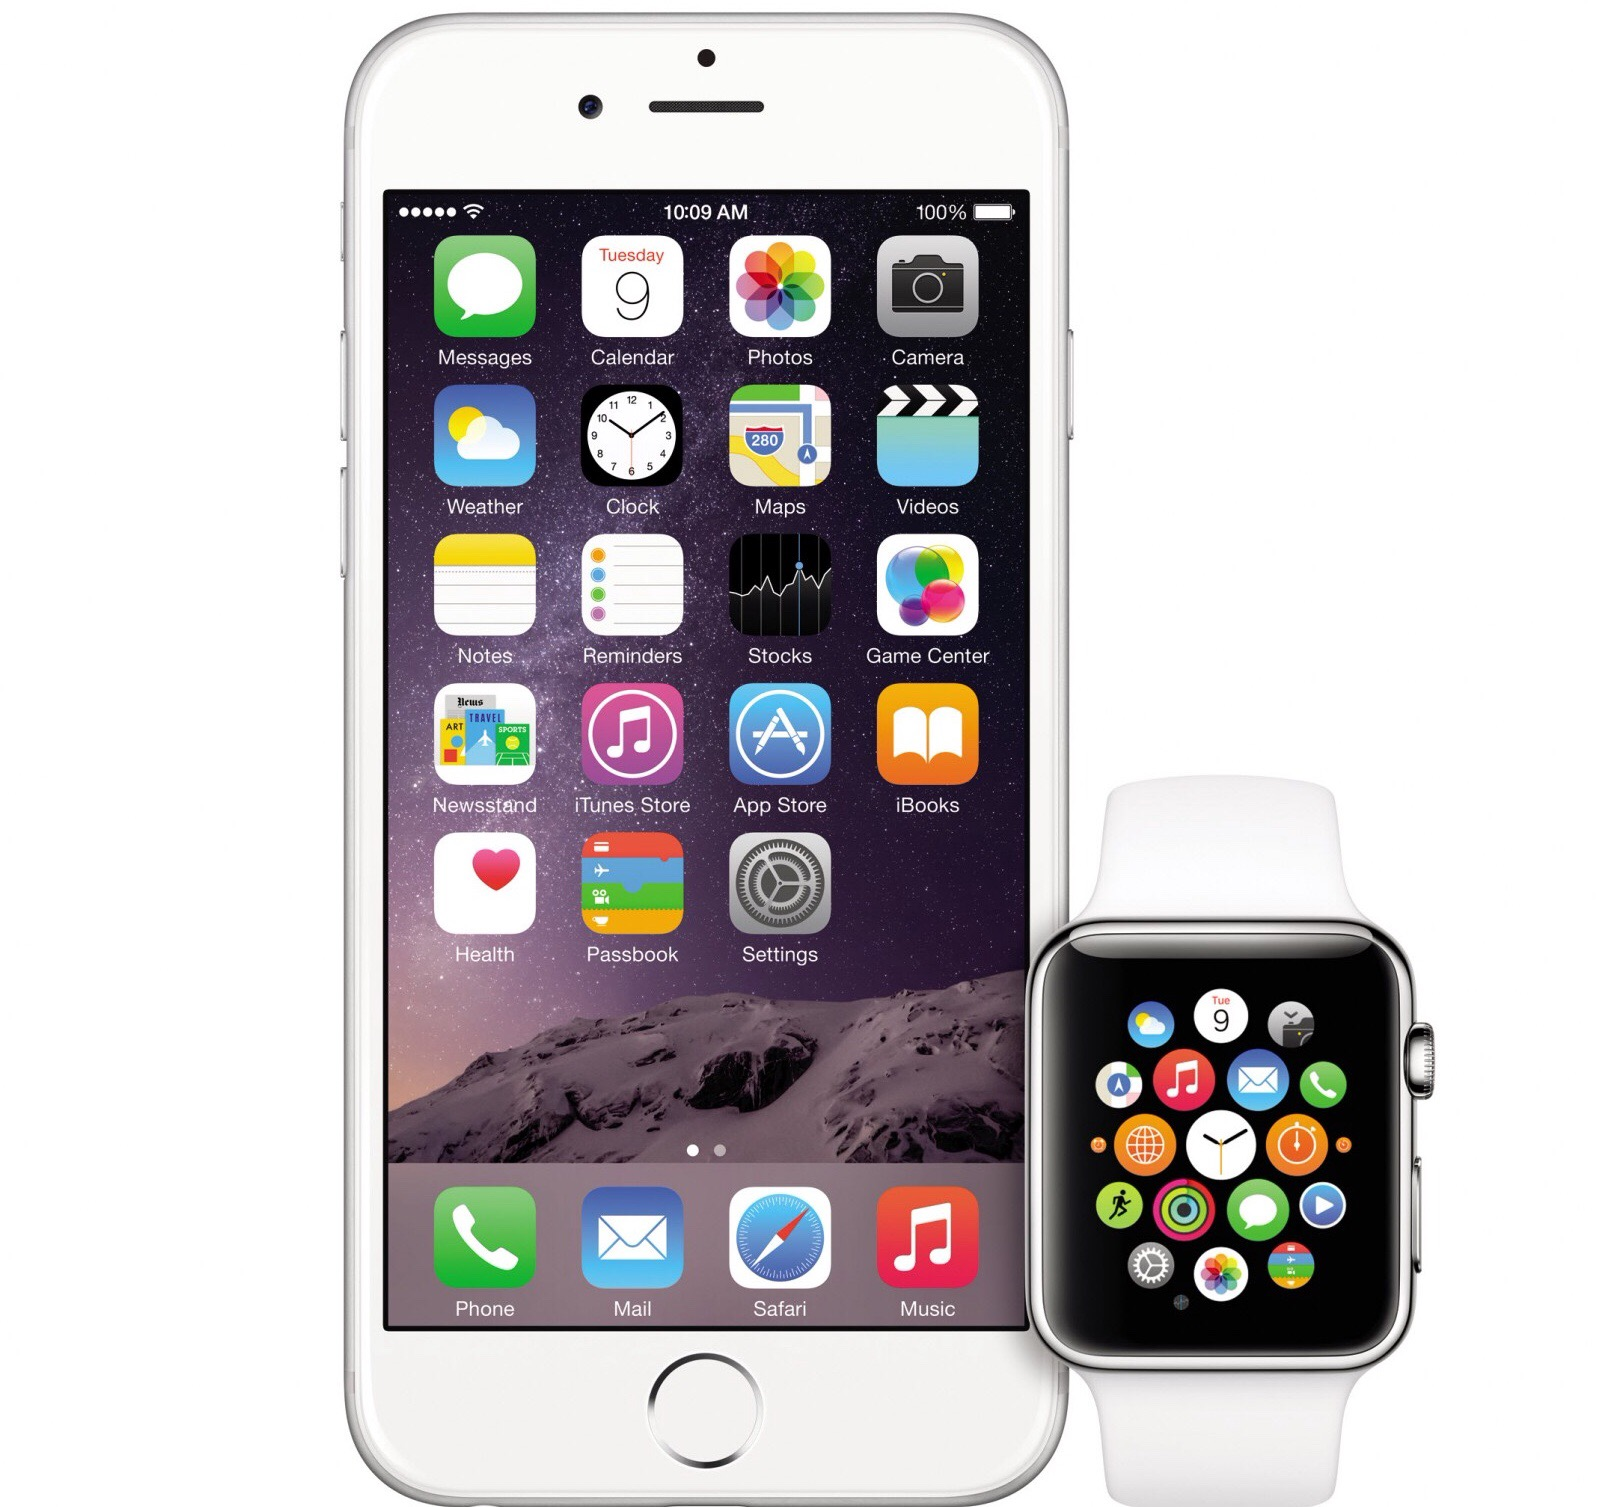 Interfaccia dell'Apple Watch su iPhone, ecco come fare [Cydia]